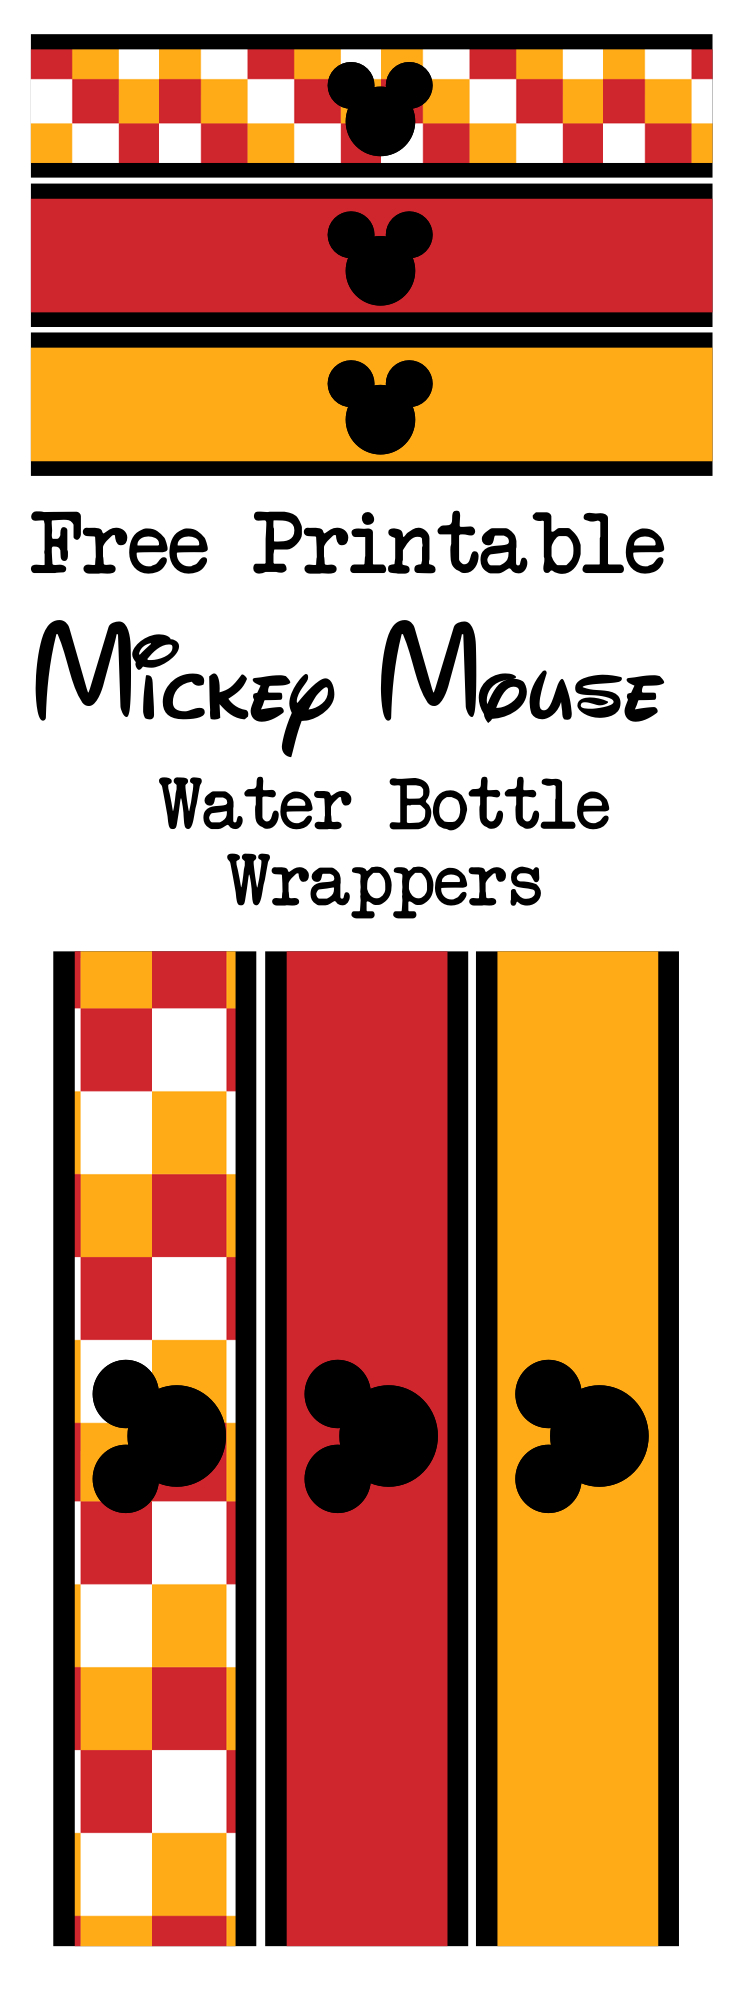 Mickey Mouse Water Bottle Wrappers Free Printable. Print these for your birthday party or baby shower. These are super cute and fun!